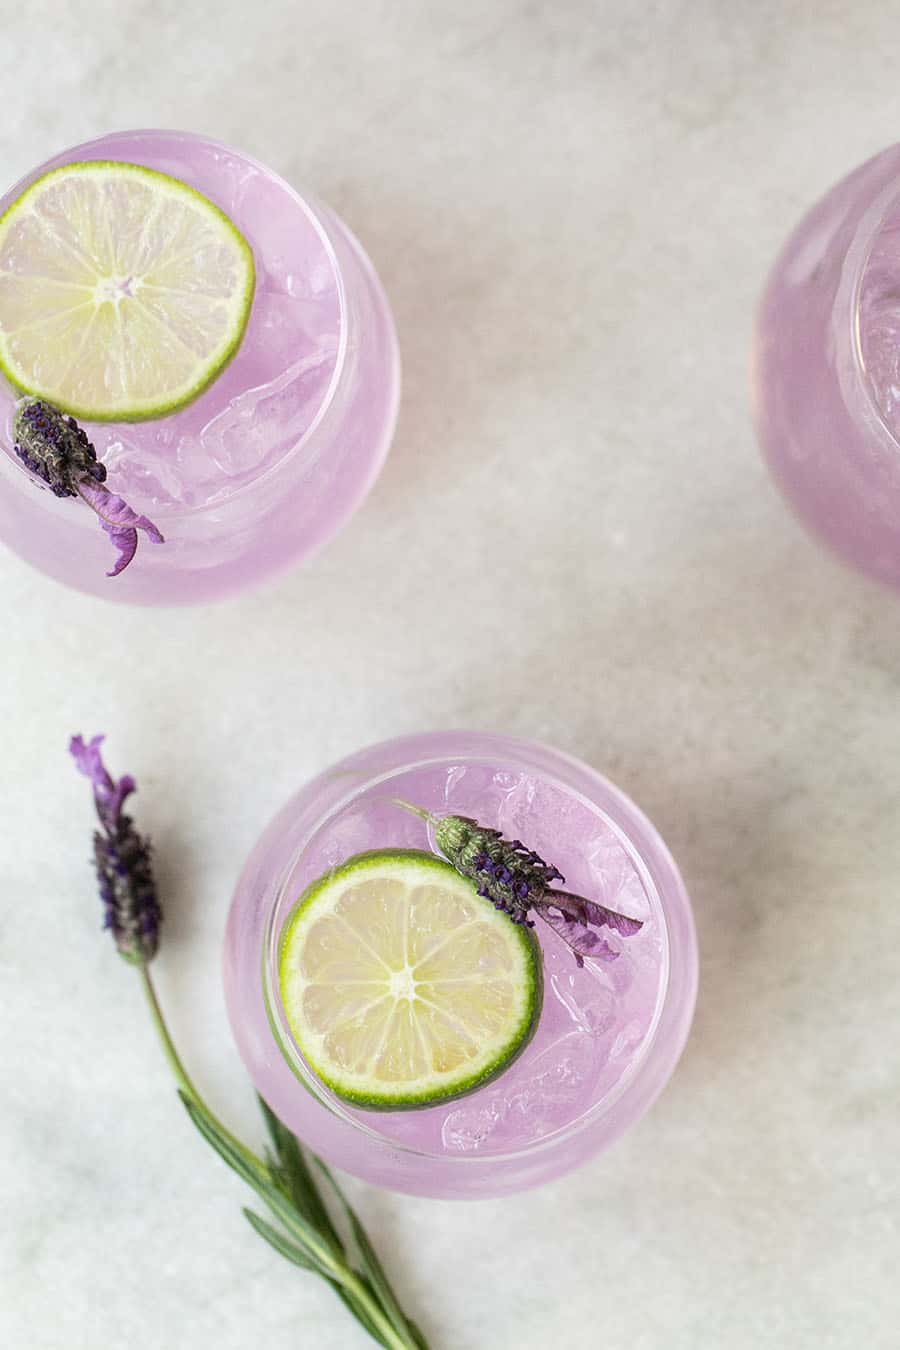 Purple ginned tonic punch with a lime slice on a marble table.